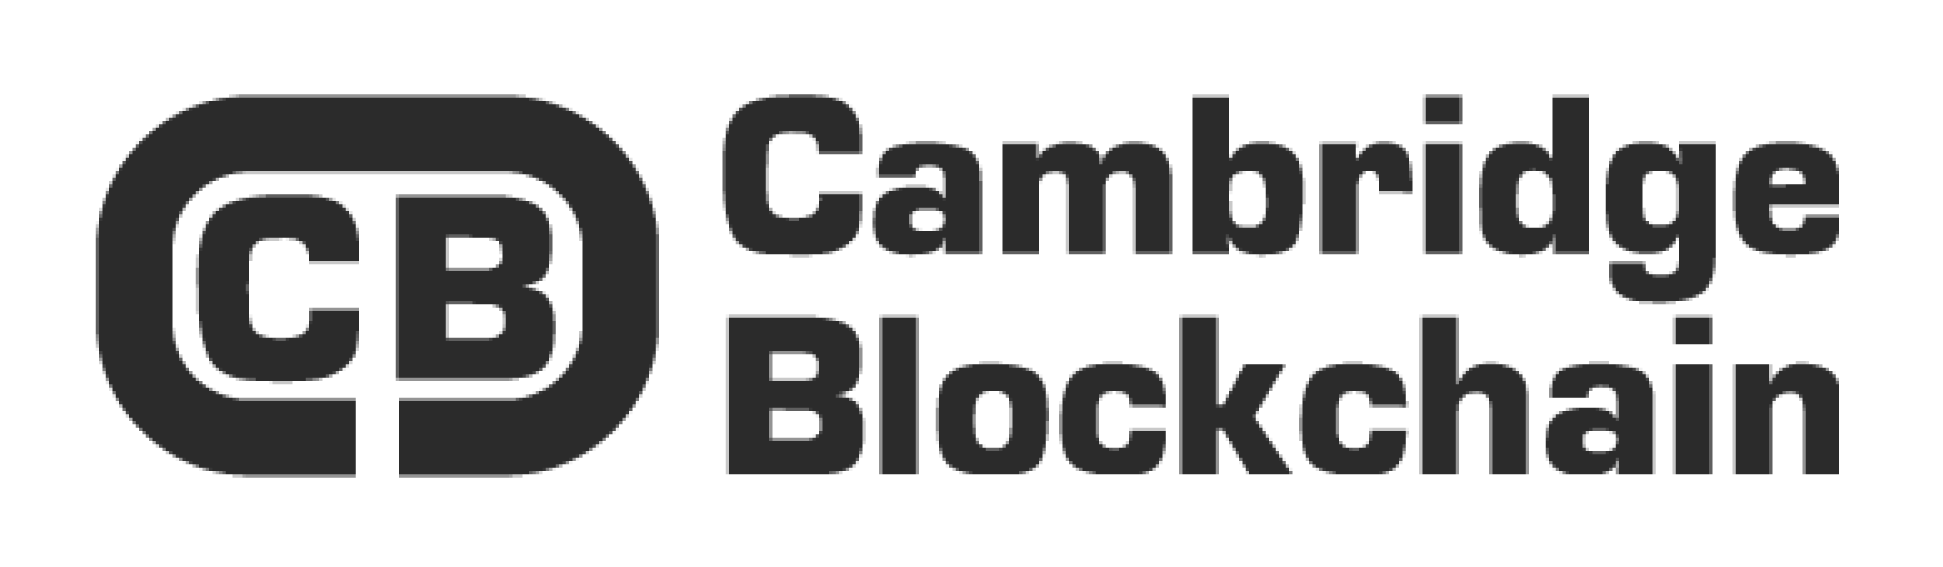 logo cambridge blockchain